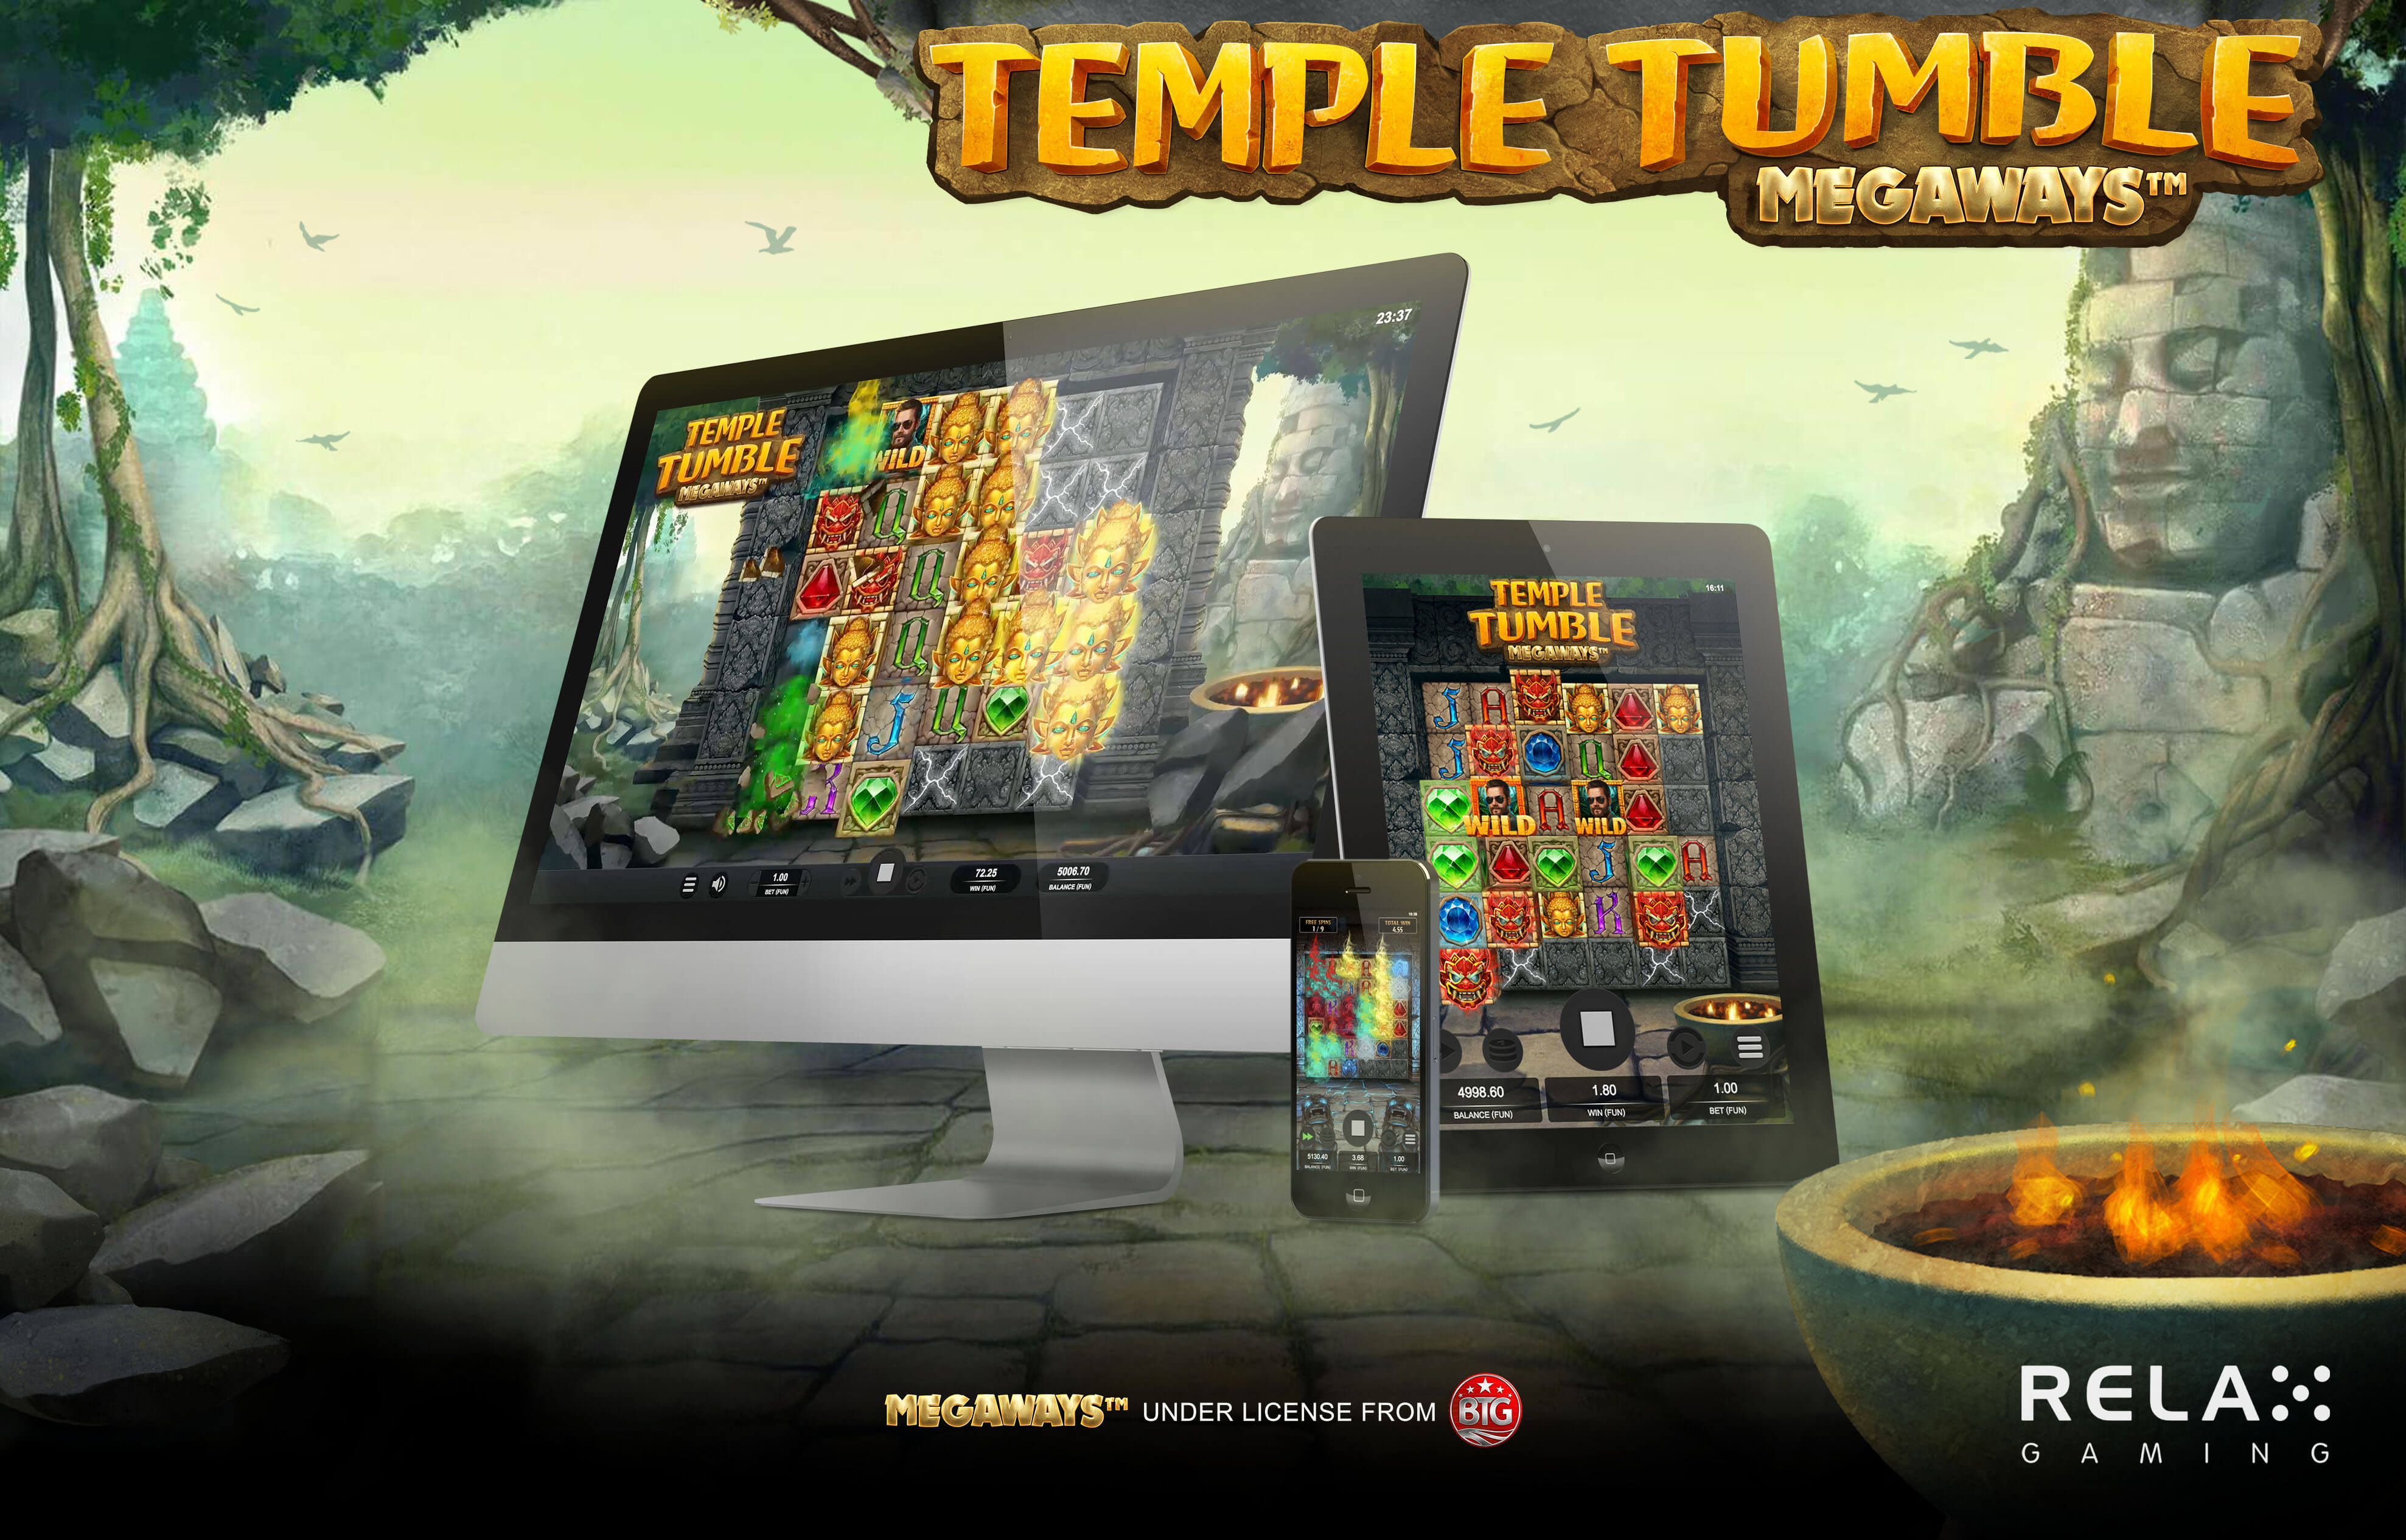 Relax Gaming unveils Temple Tumble